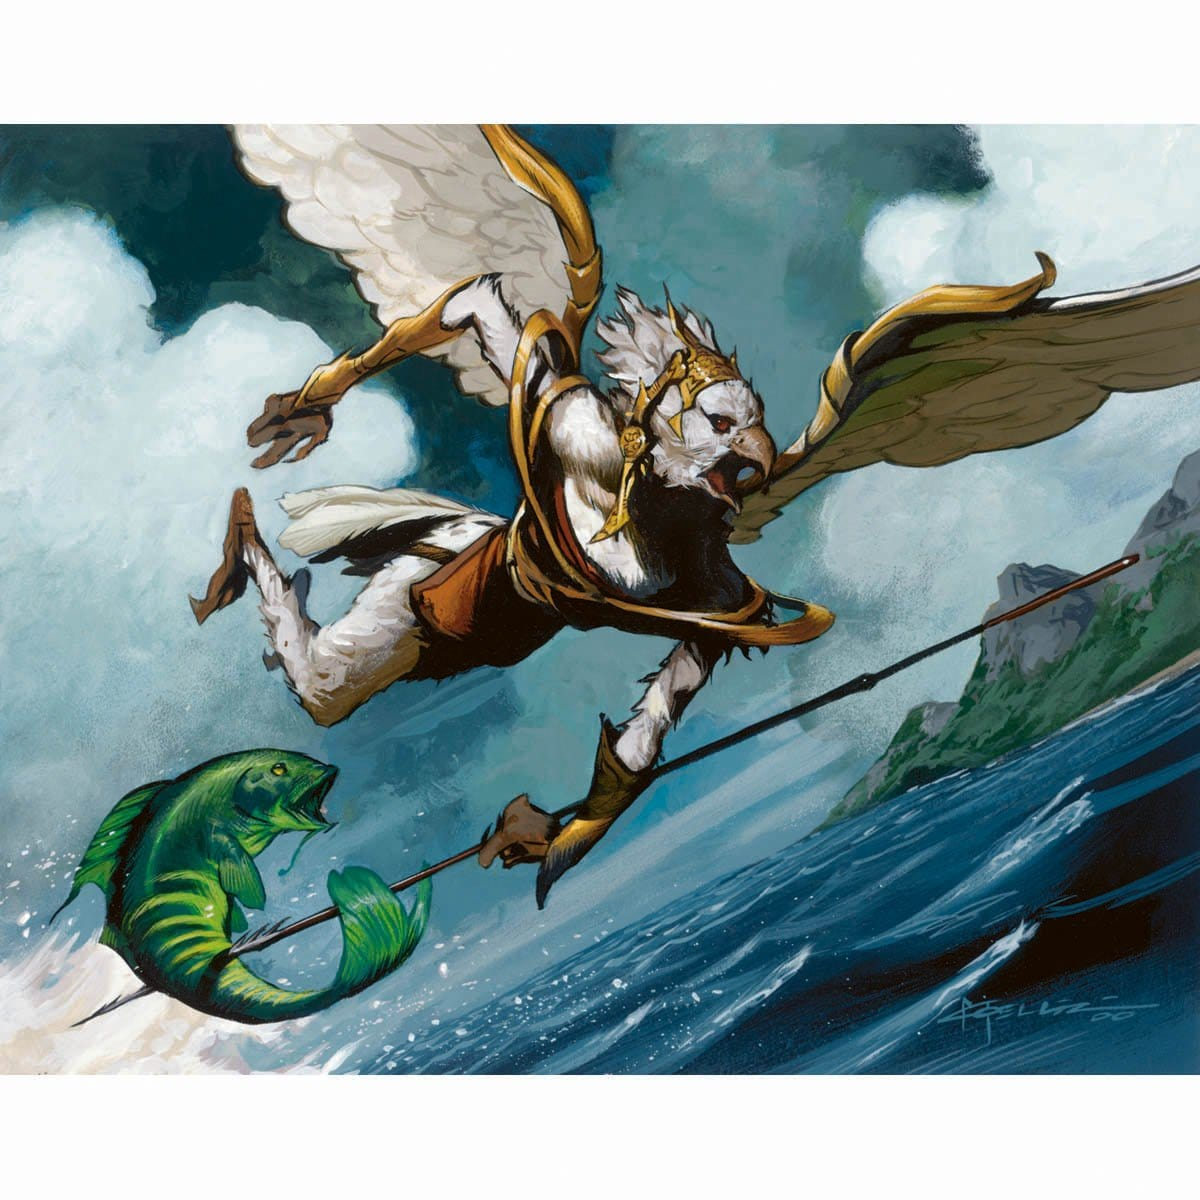 Aven Fisher Print - Print - Original Magic Art - Accessories for Magic the Gathering and other card games